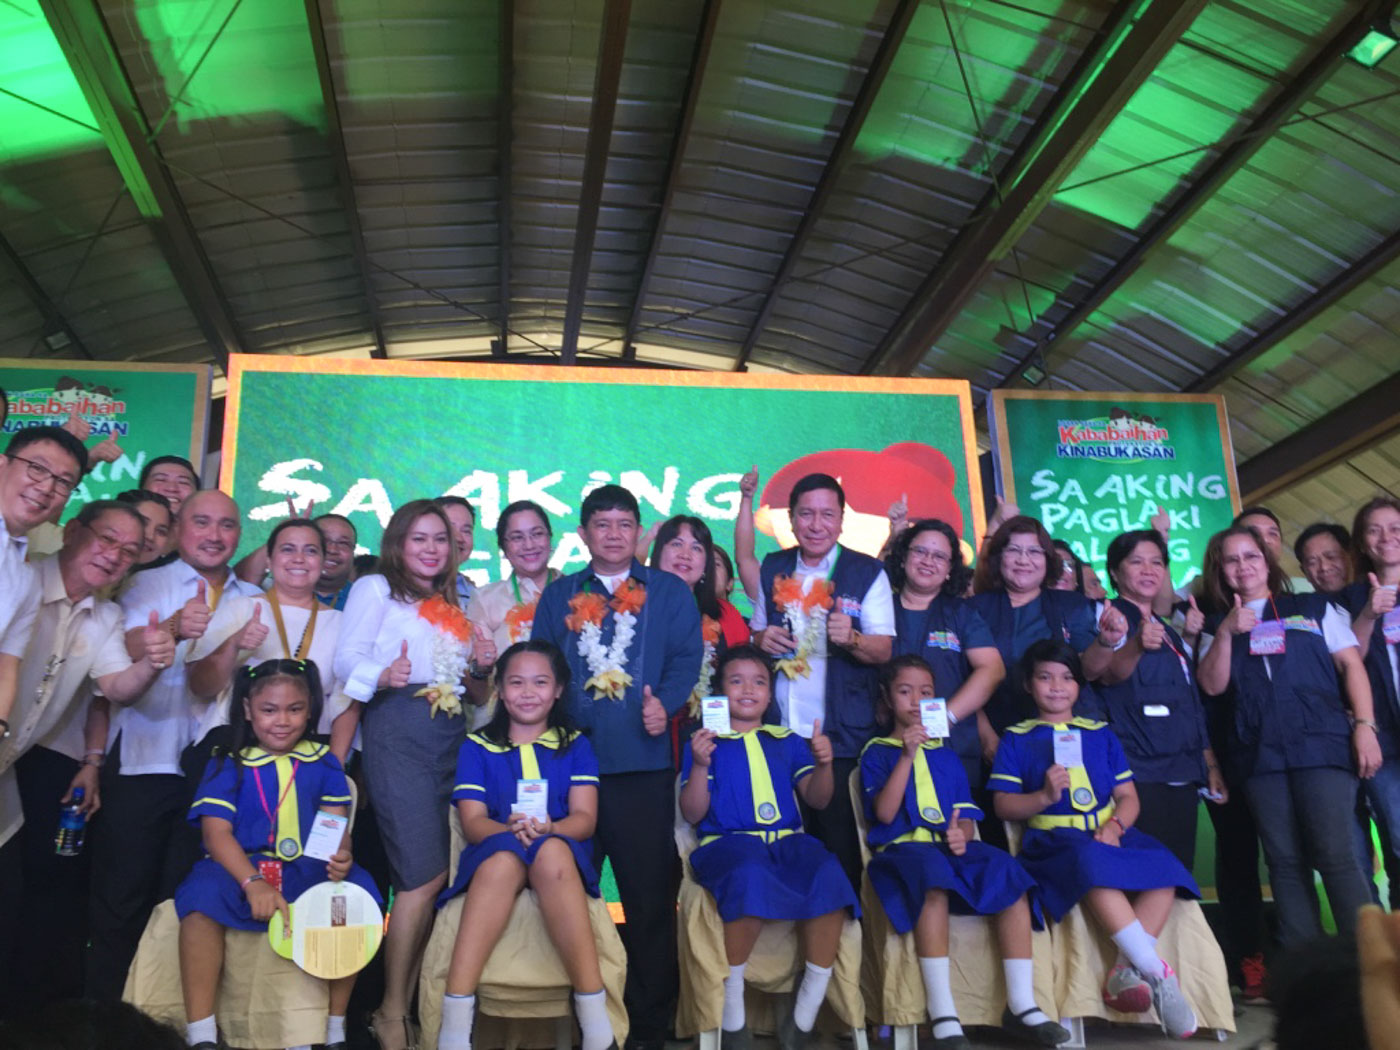 VACCINATED. Mandaluyong Representative Alexandria Gonzales (5th from left), Mayor Carmelita Abalos (6th from left), and Health Undersecretary Gerardo Bayugo (8th from left) pose with schoolgirls after their vaccination. Photo by Mara Cepeda/Rappler